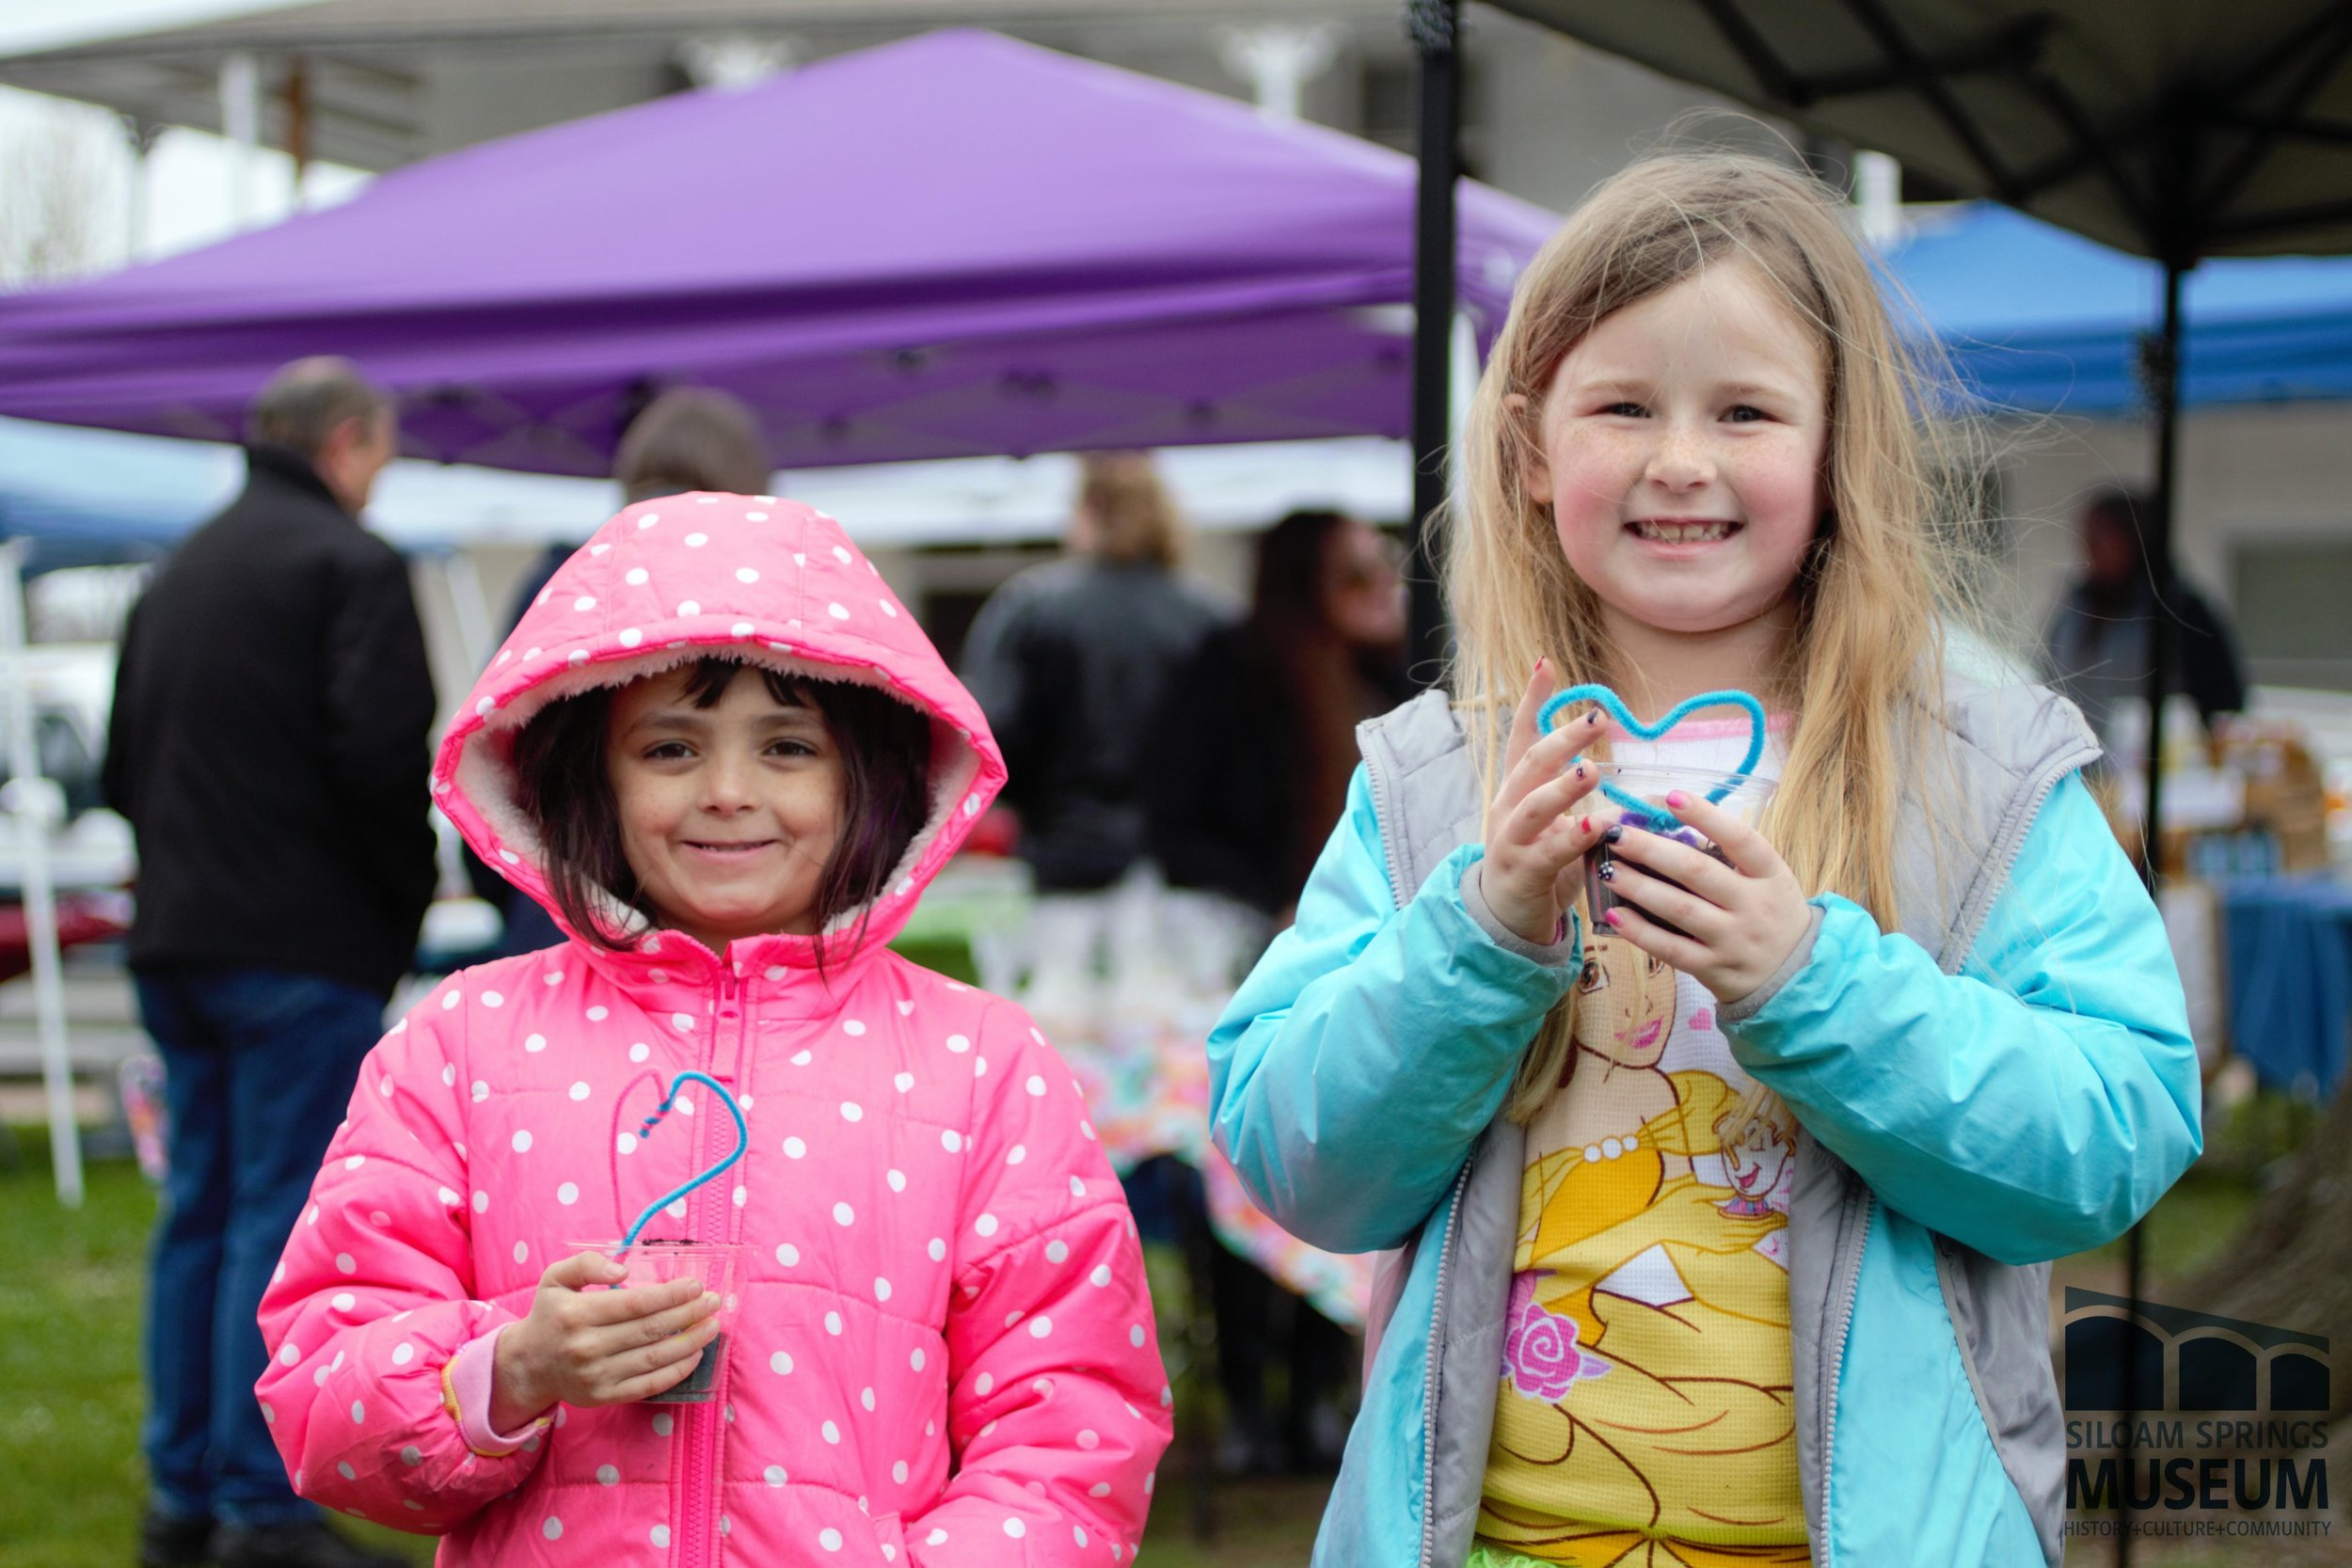 Two participants proudly display their crafts at this year's first Kids' Day at the Farmers Market on April 14. During its renovation, the museum will focus on events which promote education and bring the community of Siloam Springs together.